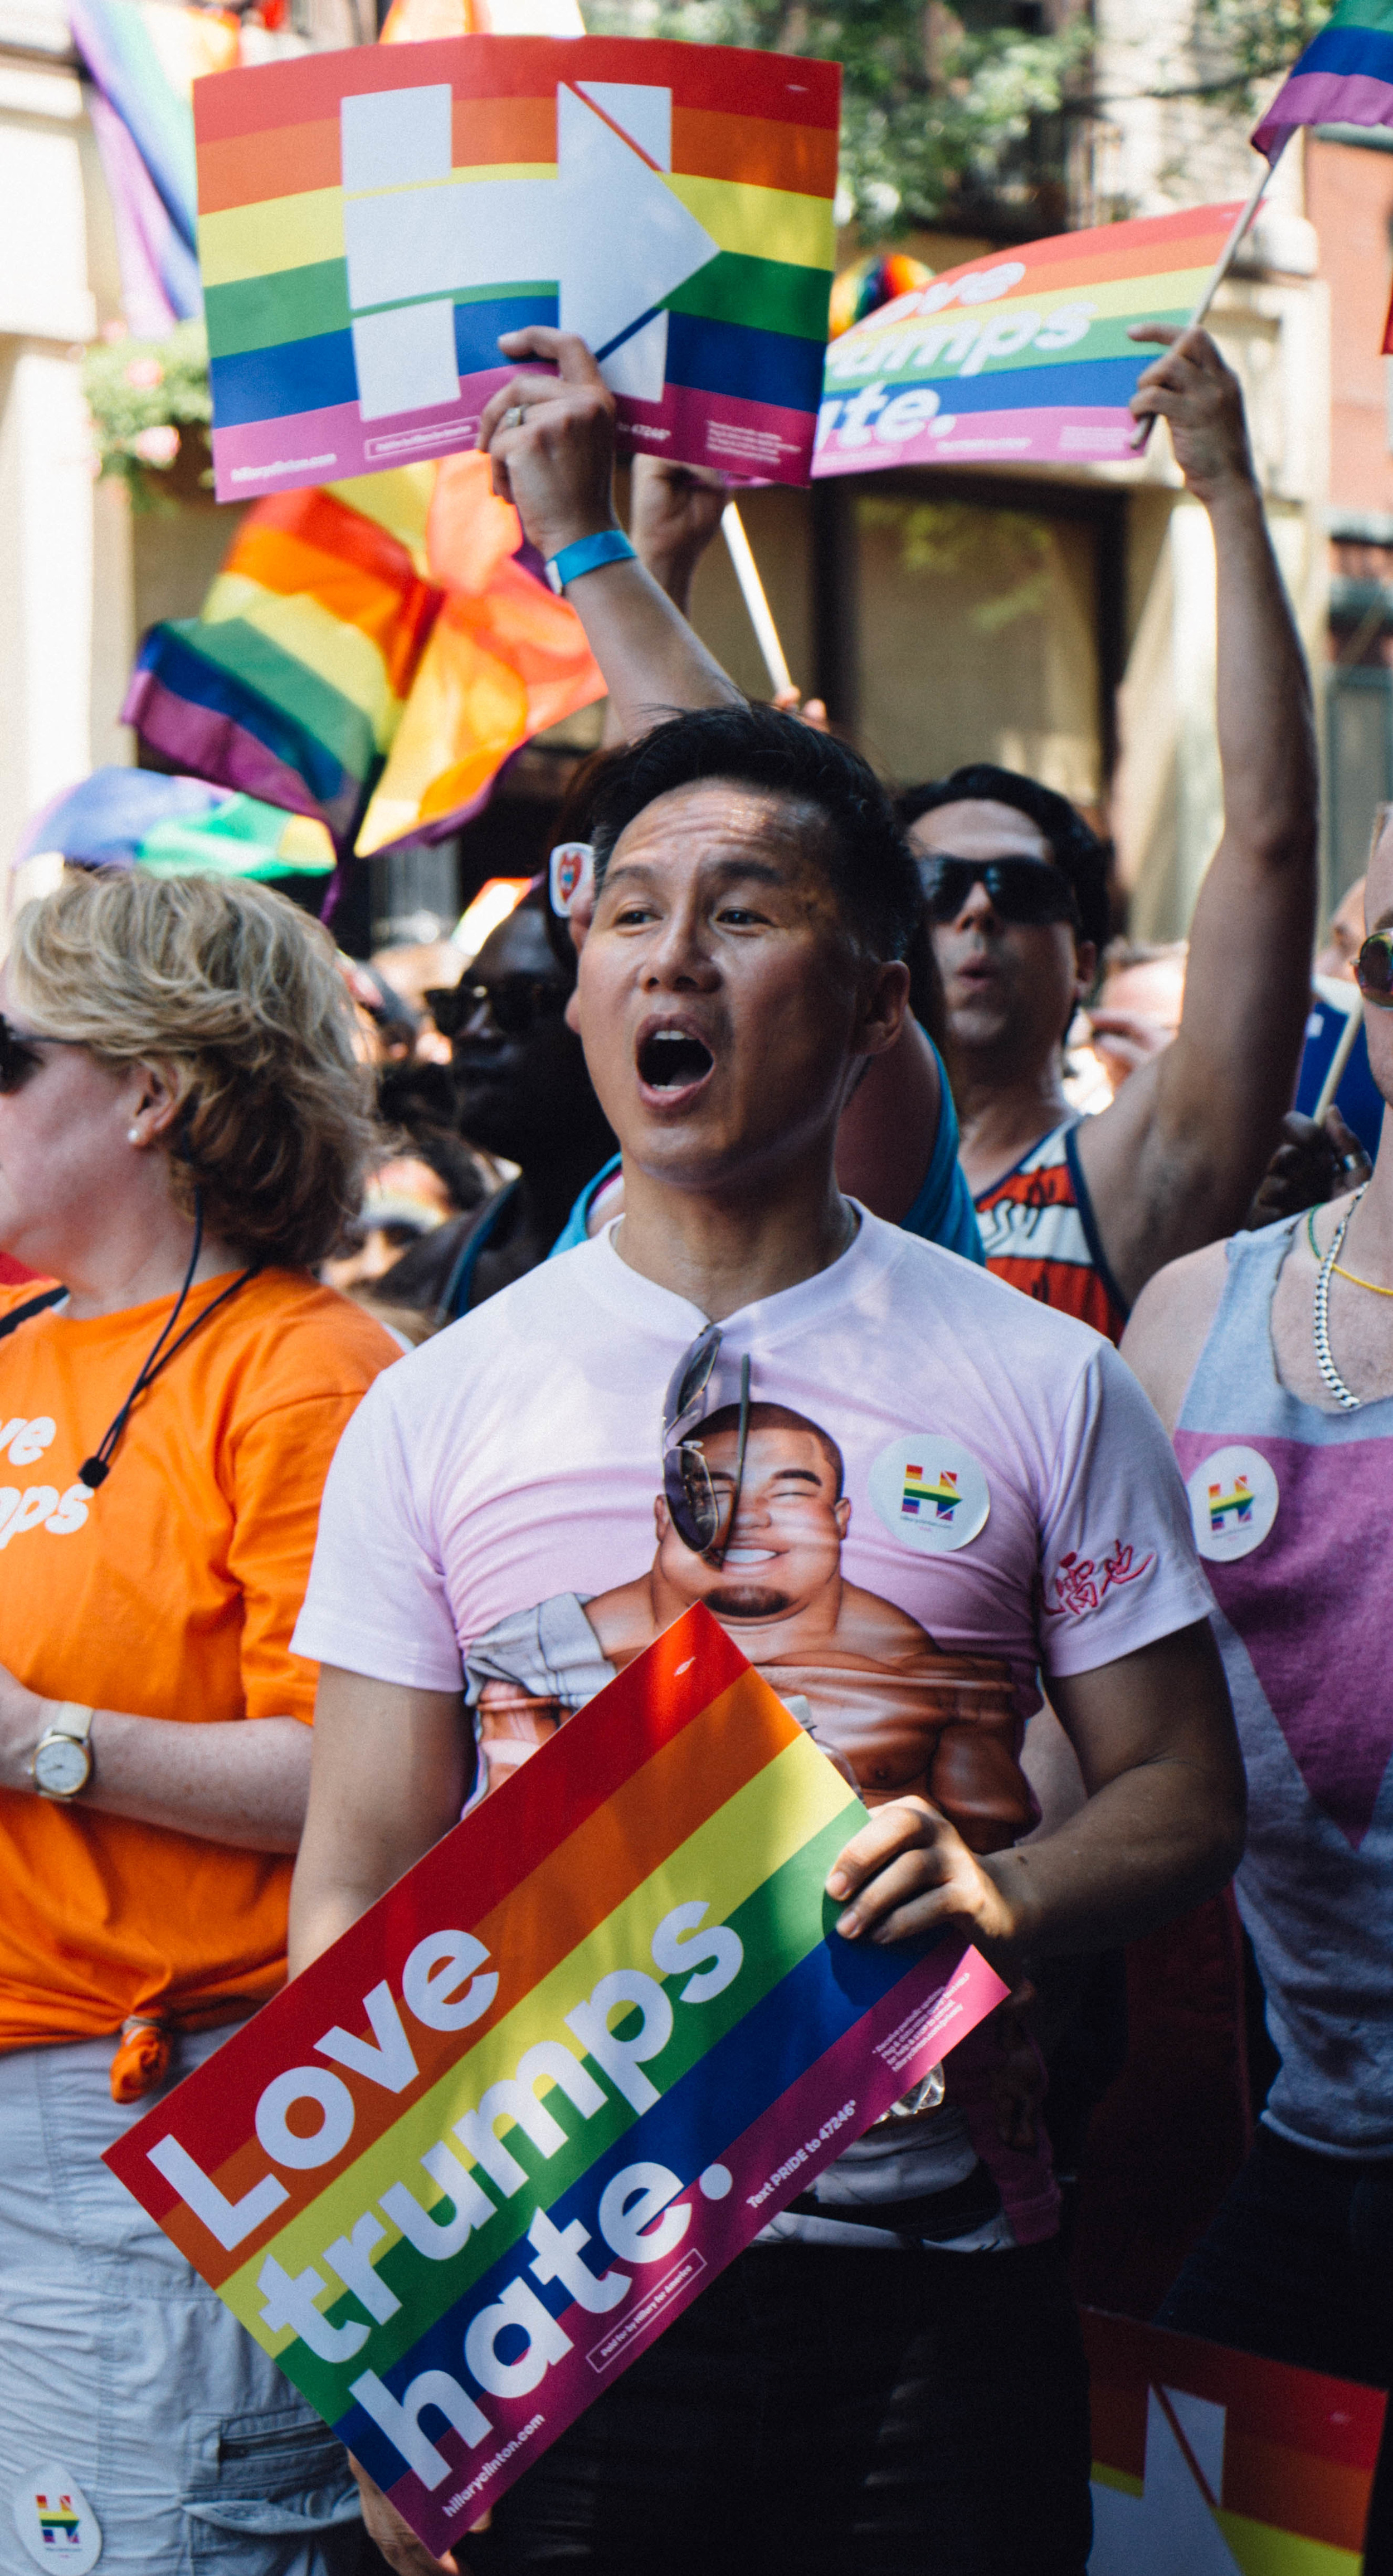 Actor B.D. Wong marches in the parade with fellow Hillary Clinton supporters.